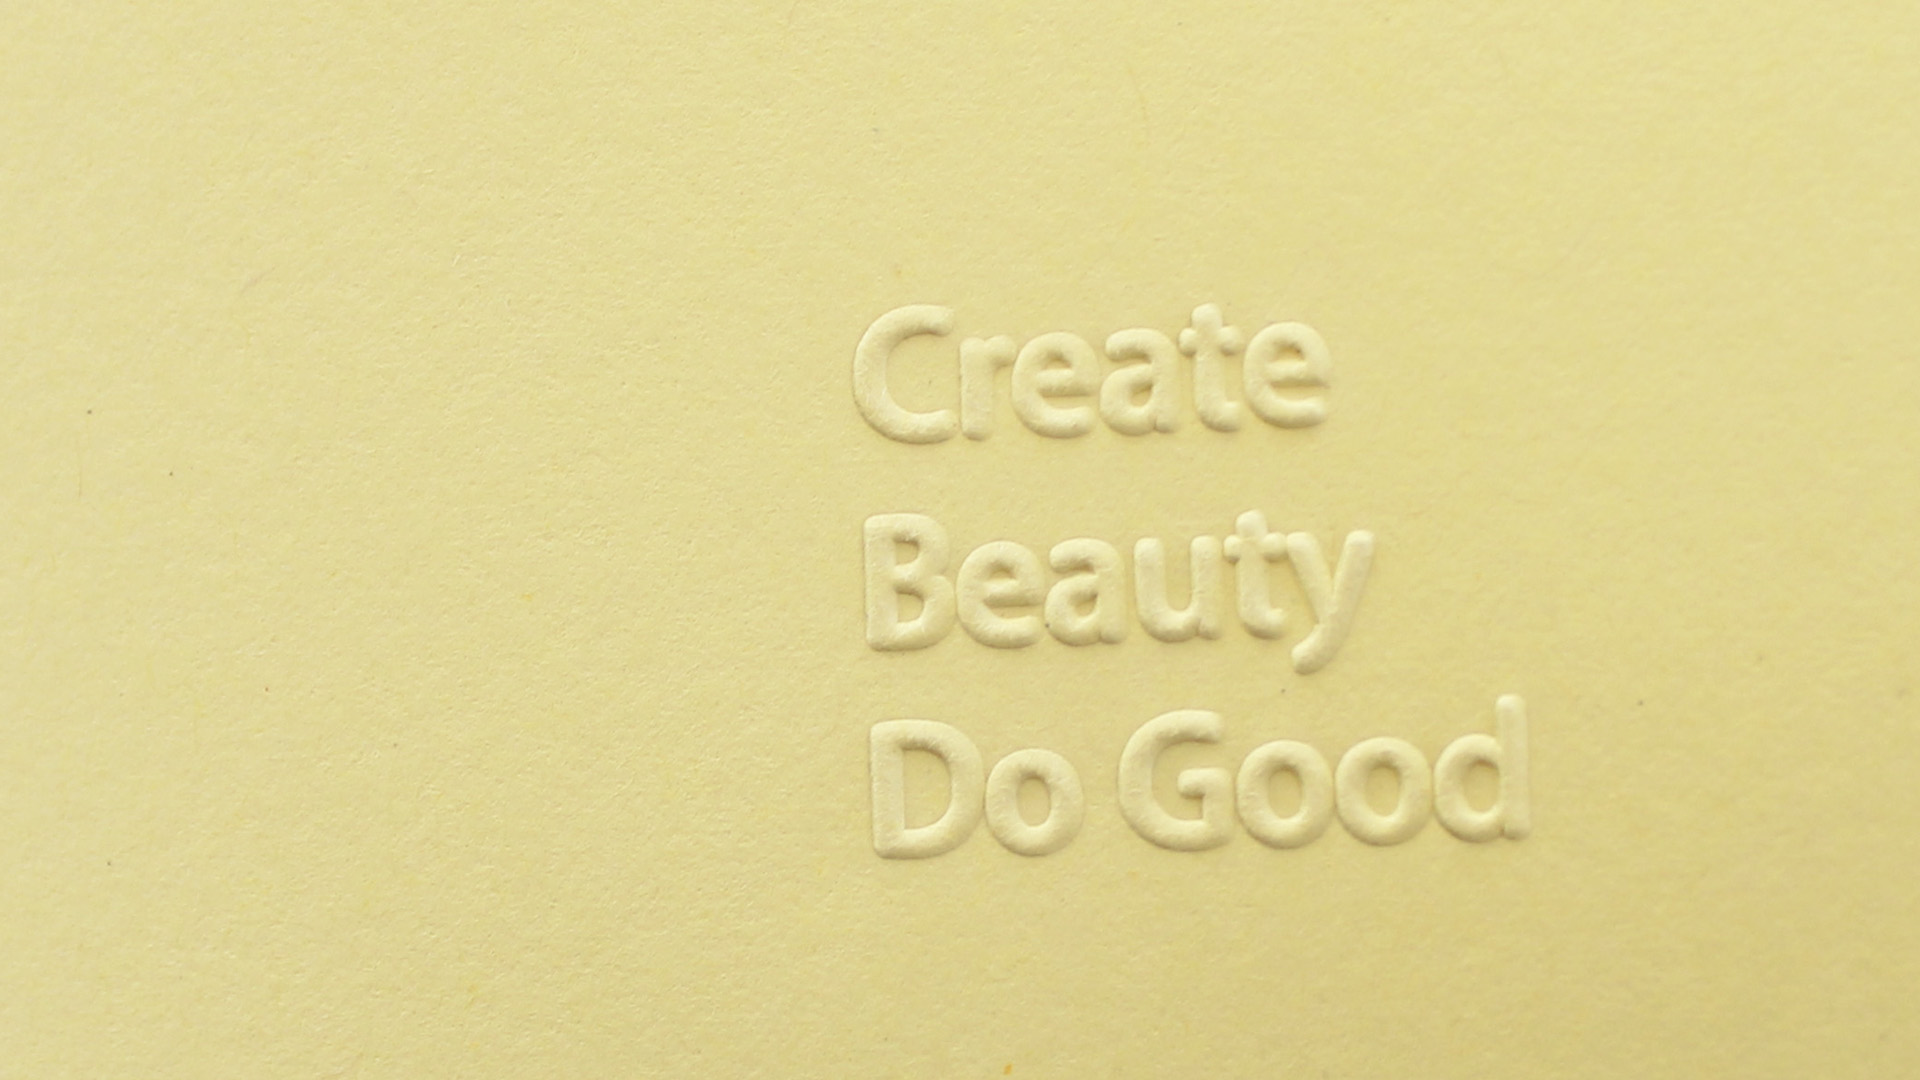 Embossed  / The Create Beauty Do Good motto is letterpressed on the cover.